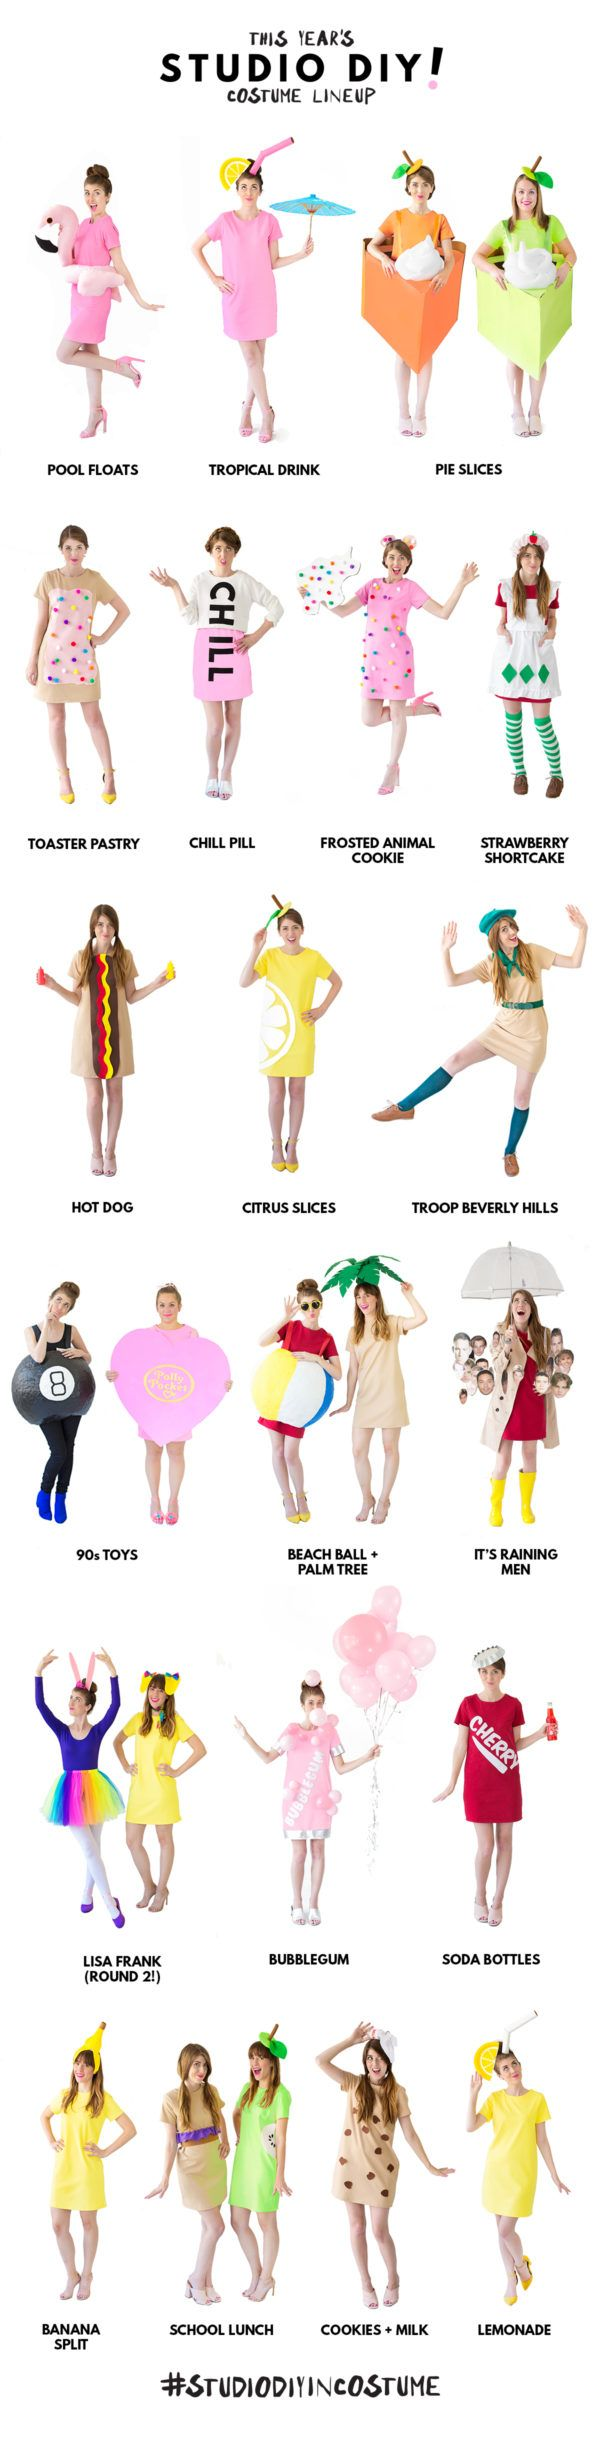 Our 2016 DIY Costume Lineup! | studiodiy.com